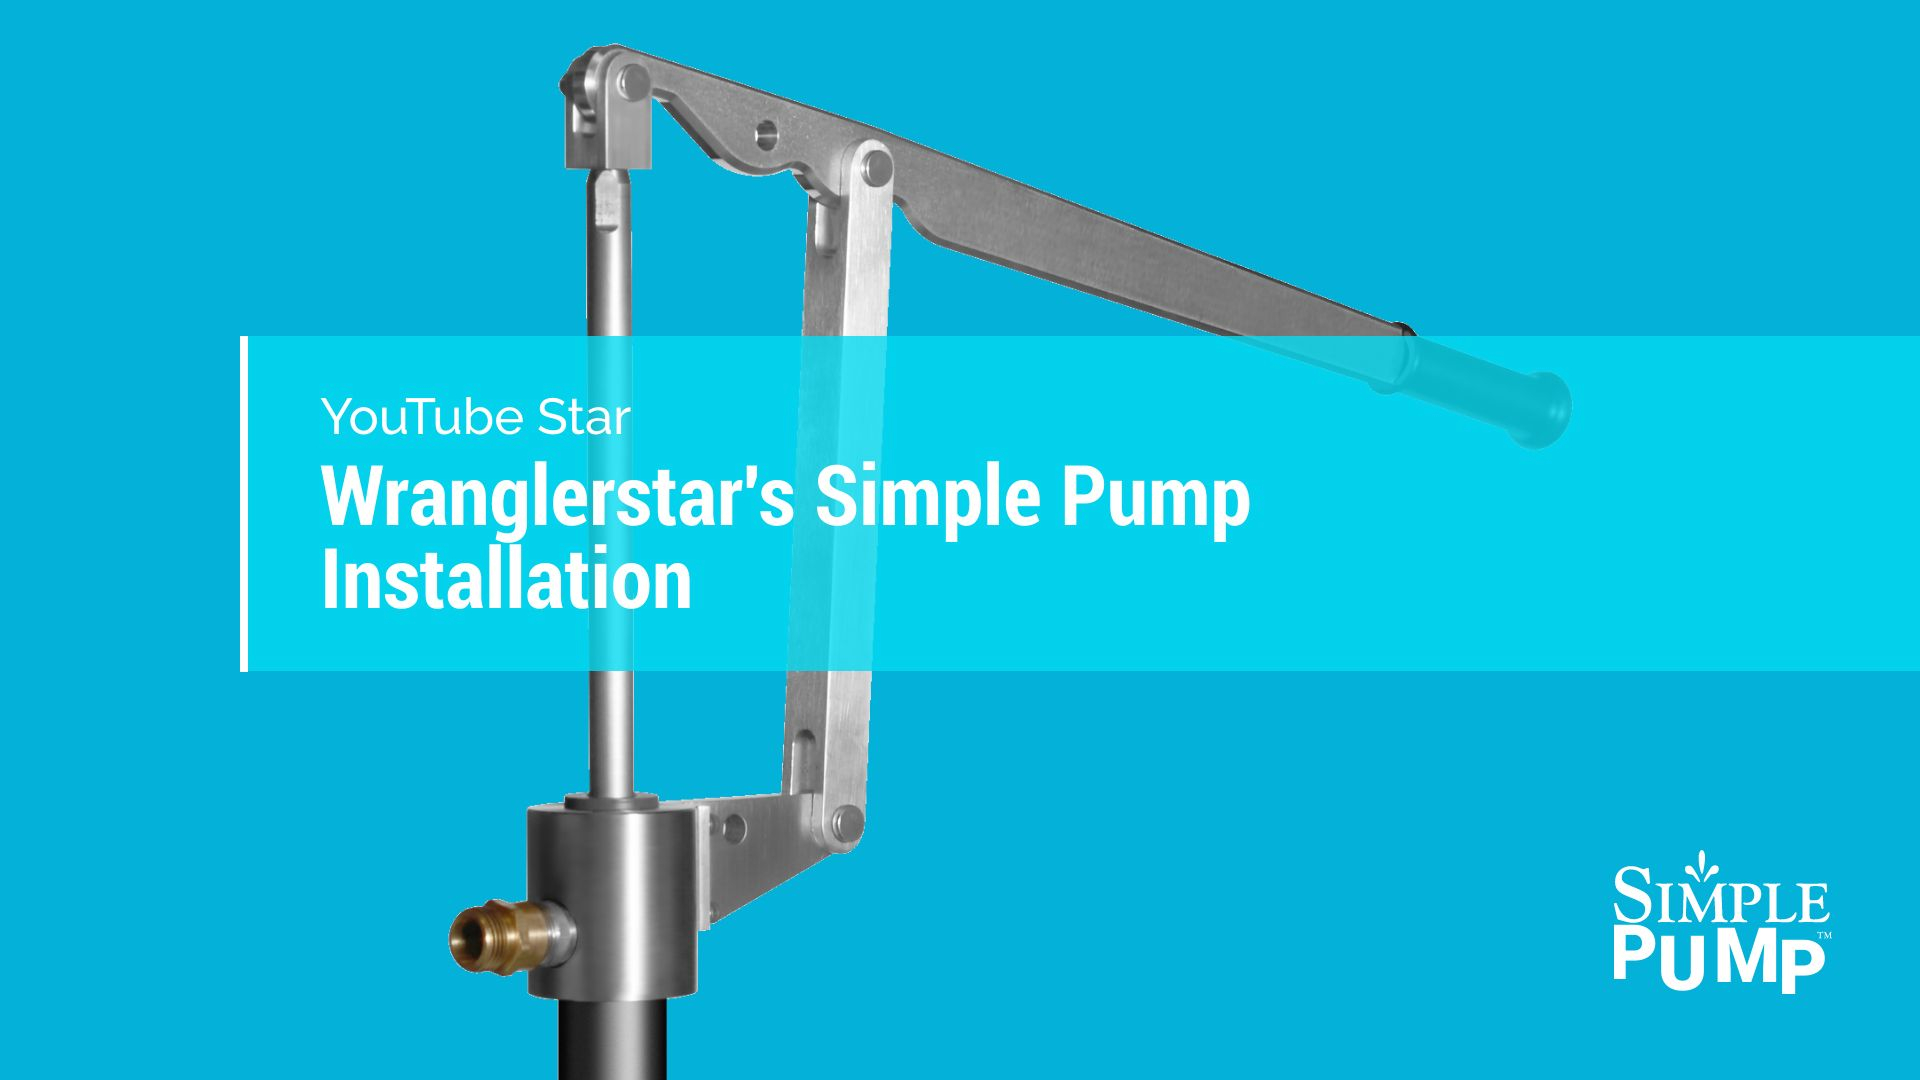 Wranglerstar's Simple Pump Installation Video